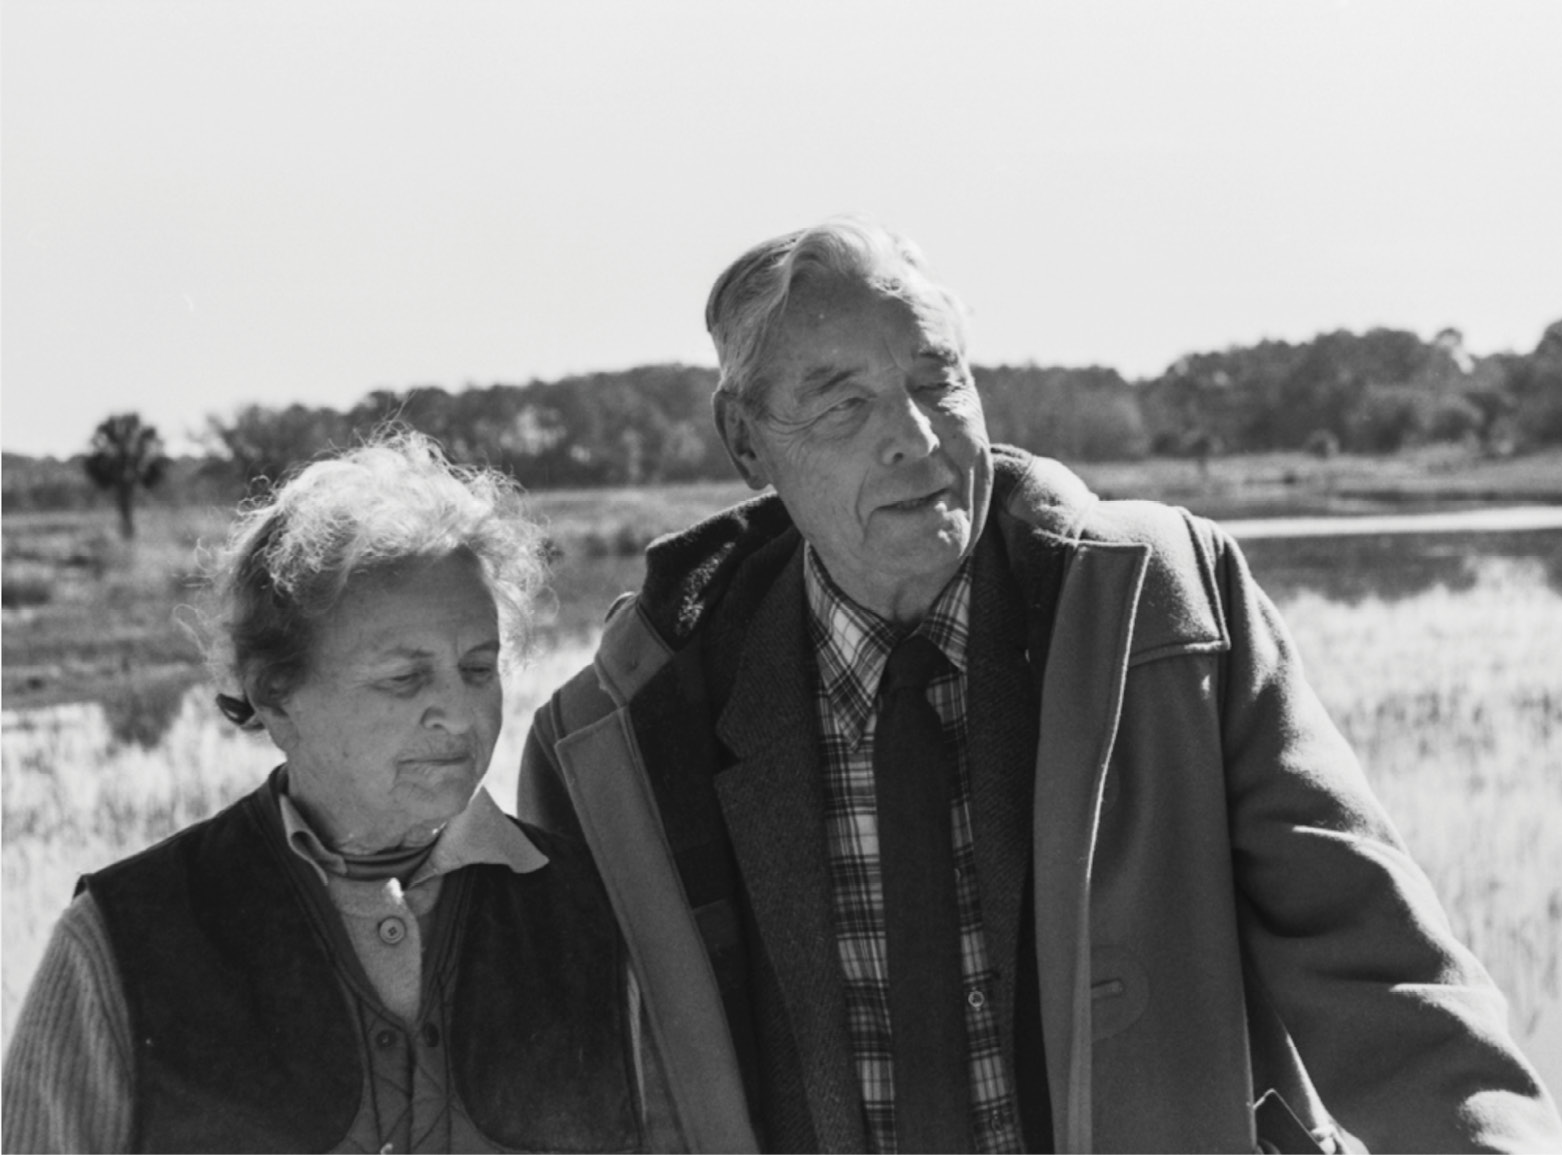 """Dorothy and Gaylord Donnelley, pictured here at their Ashepoo retreat, were avid hunters and dedicated conservationists. """"They lived out their civic ethics at Ashepoo,"""" says their granddaughter Ceara. The Gaylord & Dorothy Foundation continues to support the arts and land conservation in the Lowcountry and Chicago, granting more than $8 million in funding annually."""